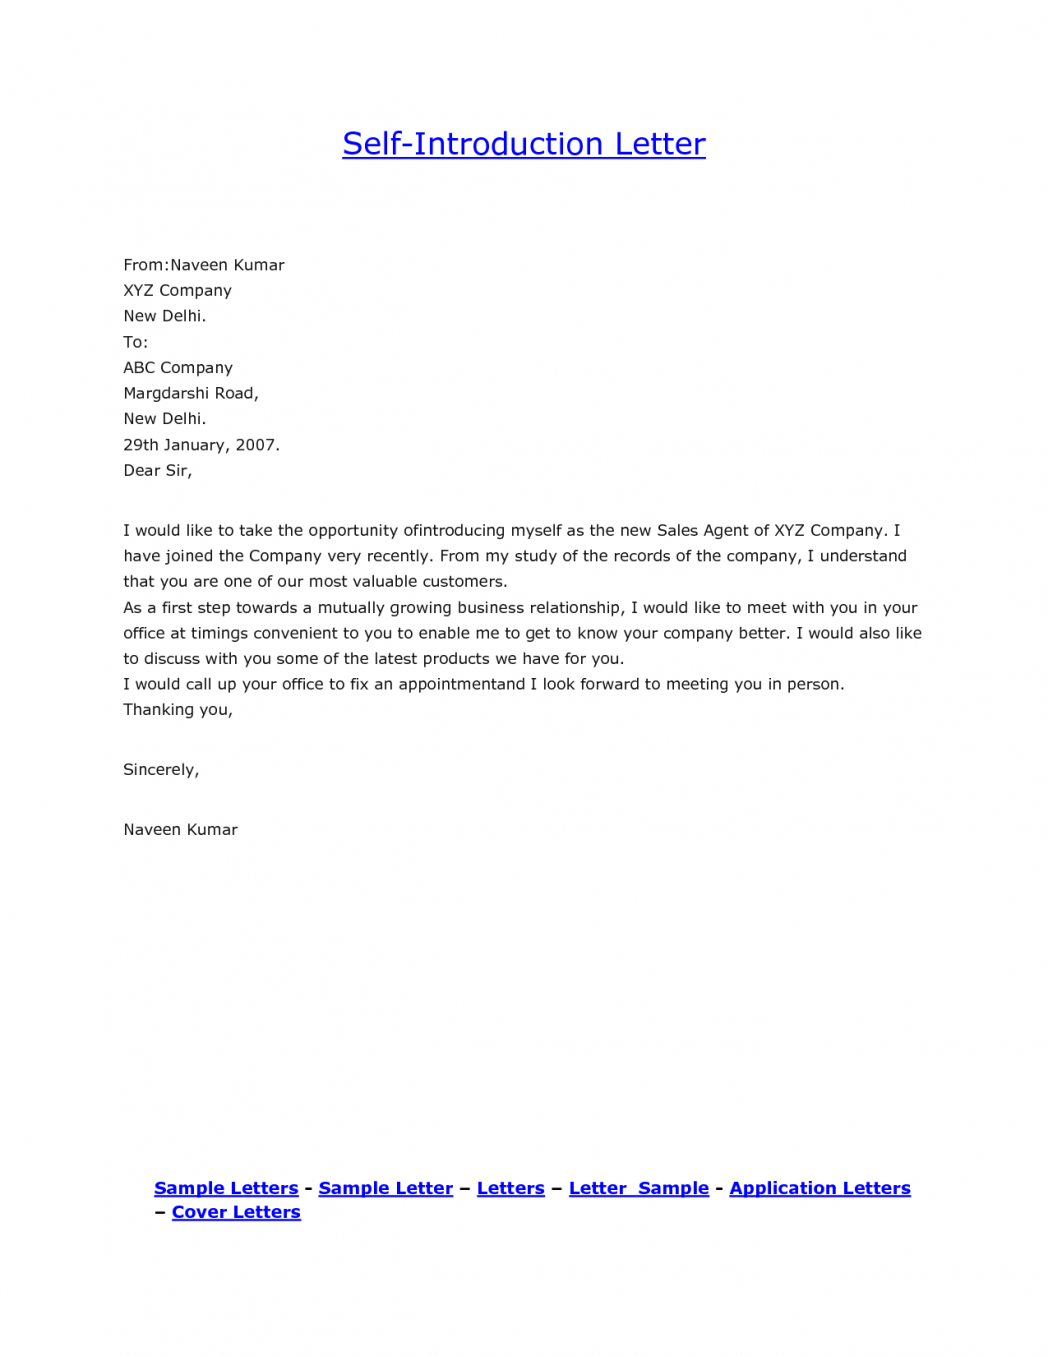 020 Introducing Myself Essay Self Introduction Introduce Personal Letter Template Sample How To Formally Yourself Via Writing 1048x1356 About Striking Apply Job With Body And Conclusion Full